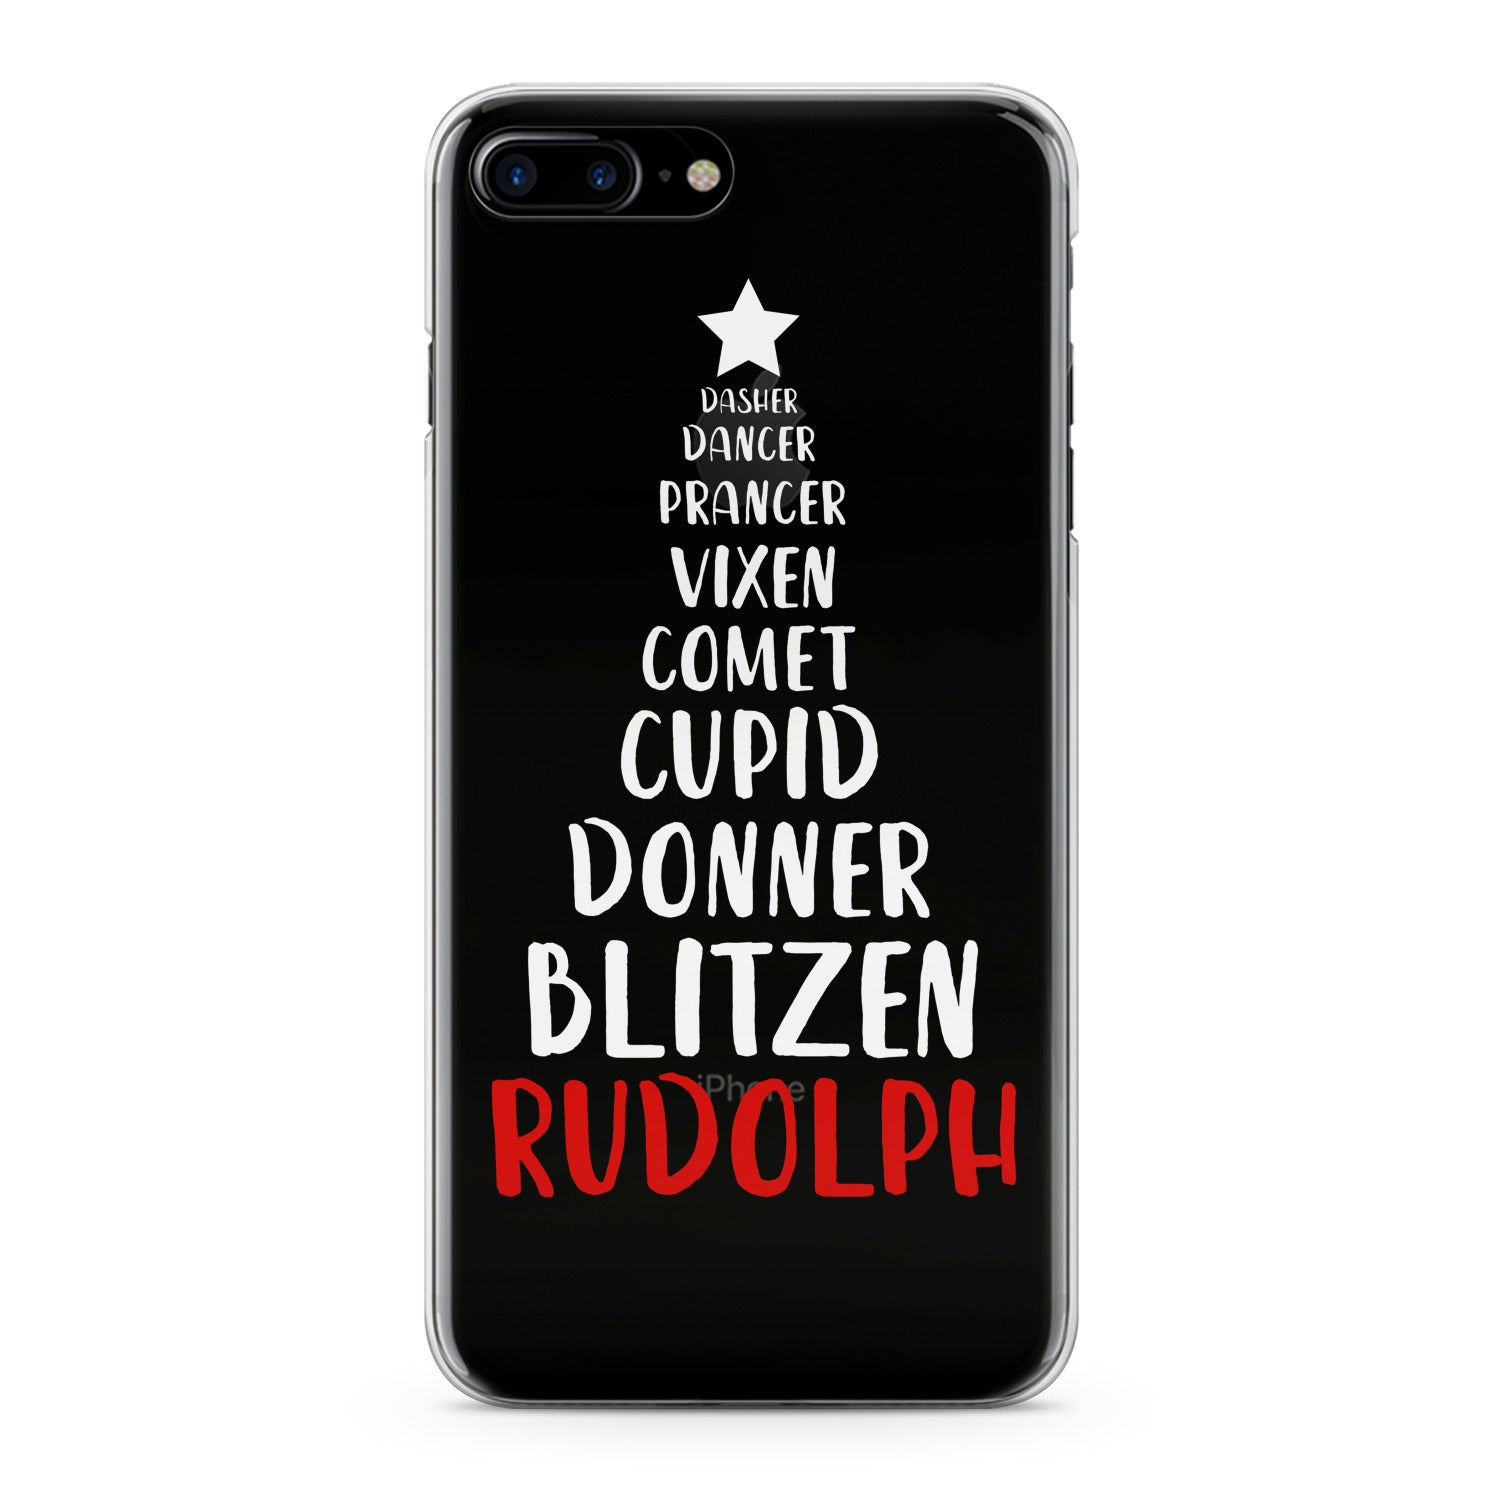 Lex Altern Christmas Tree Quote Phone Case for your iPhone & Android phone.